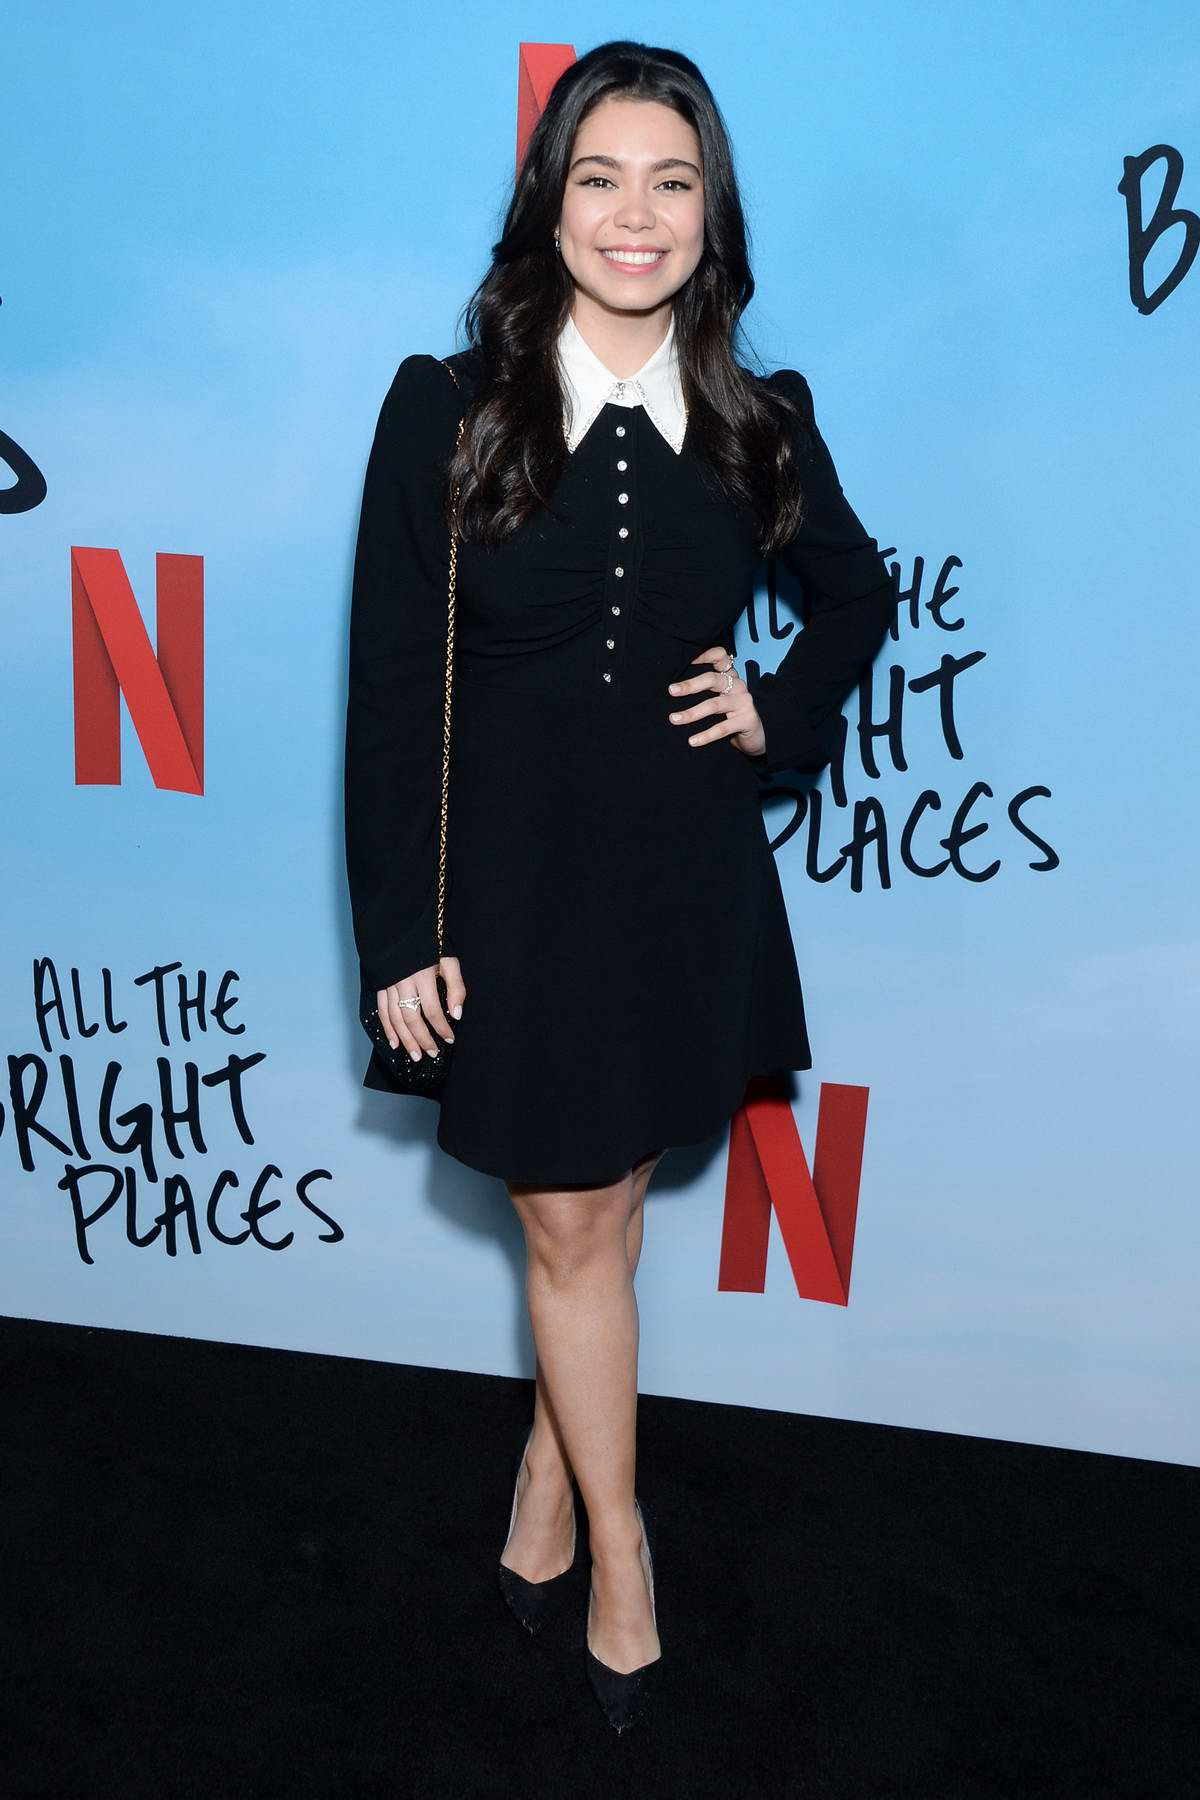 Auli'i Cravalho attends the Special Screening of Netflix's 'All The Bright Places' at ArcLight Hollywood in Hollywood, California